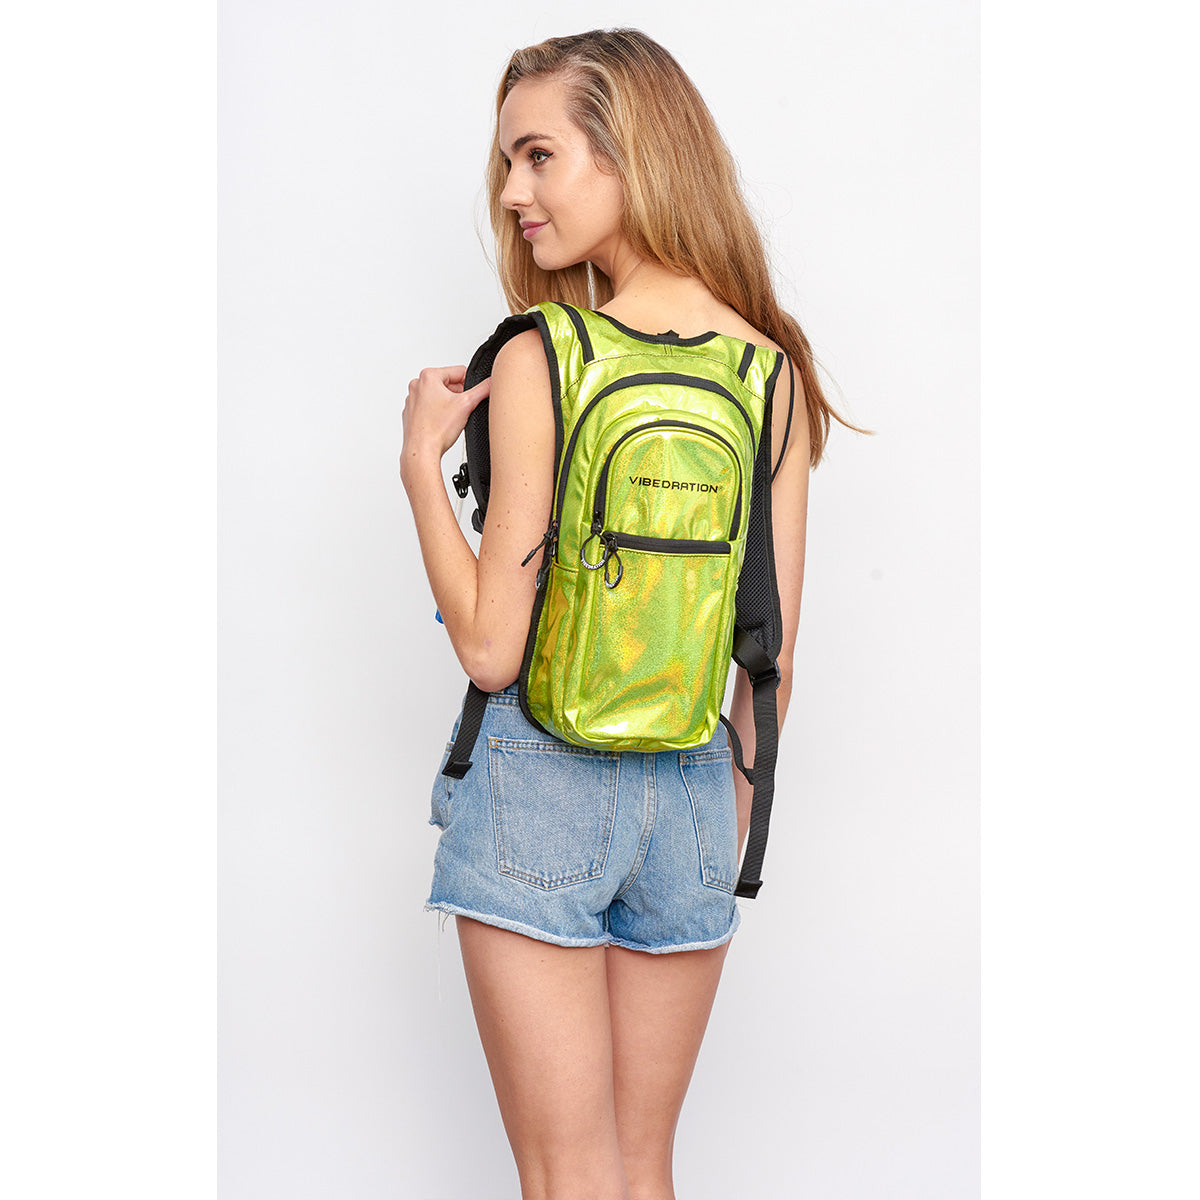 Back shot of Women Wearing VIP Holla-Graphic Neon EDC Hydration Pack